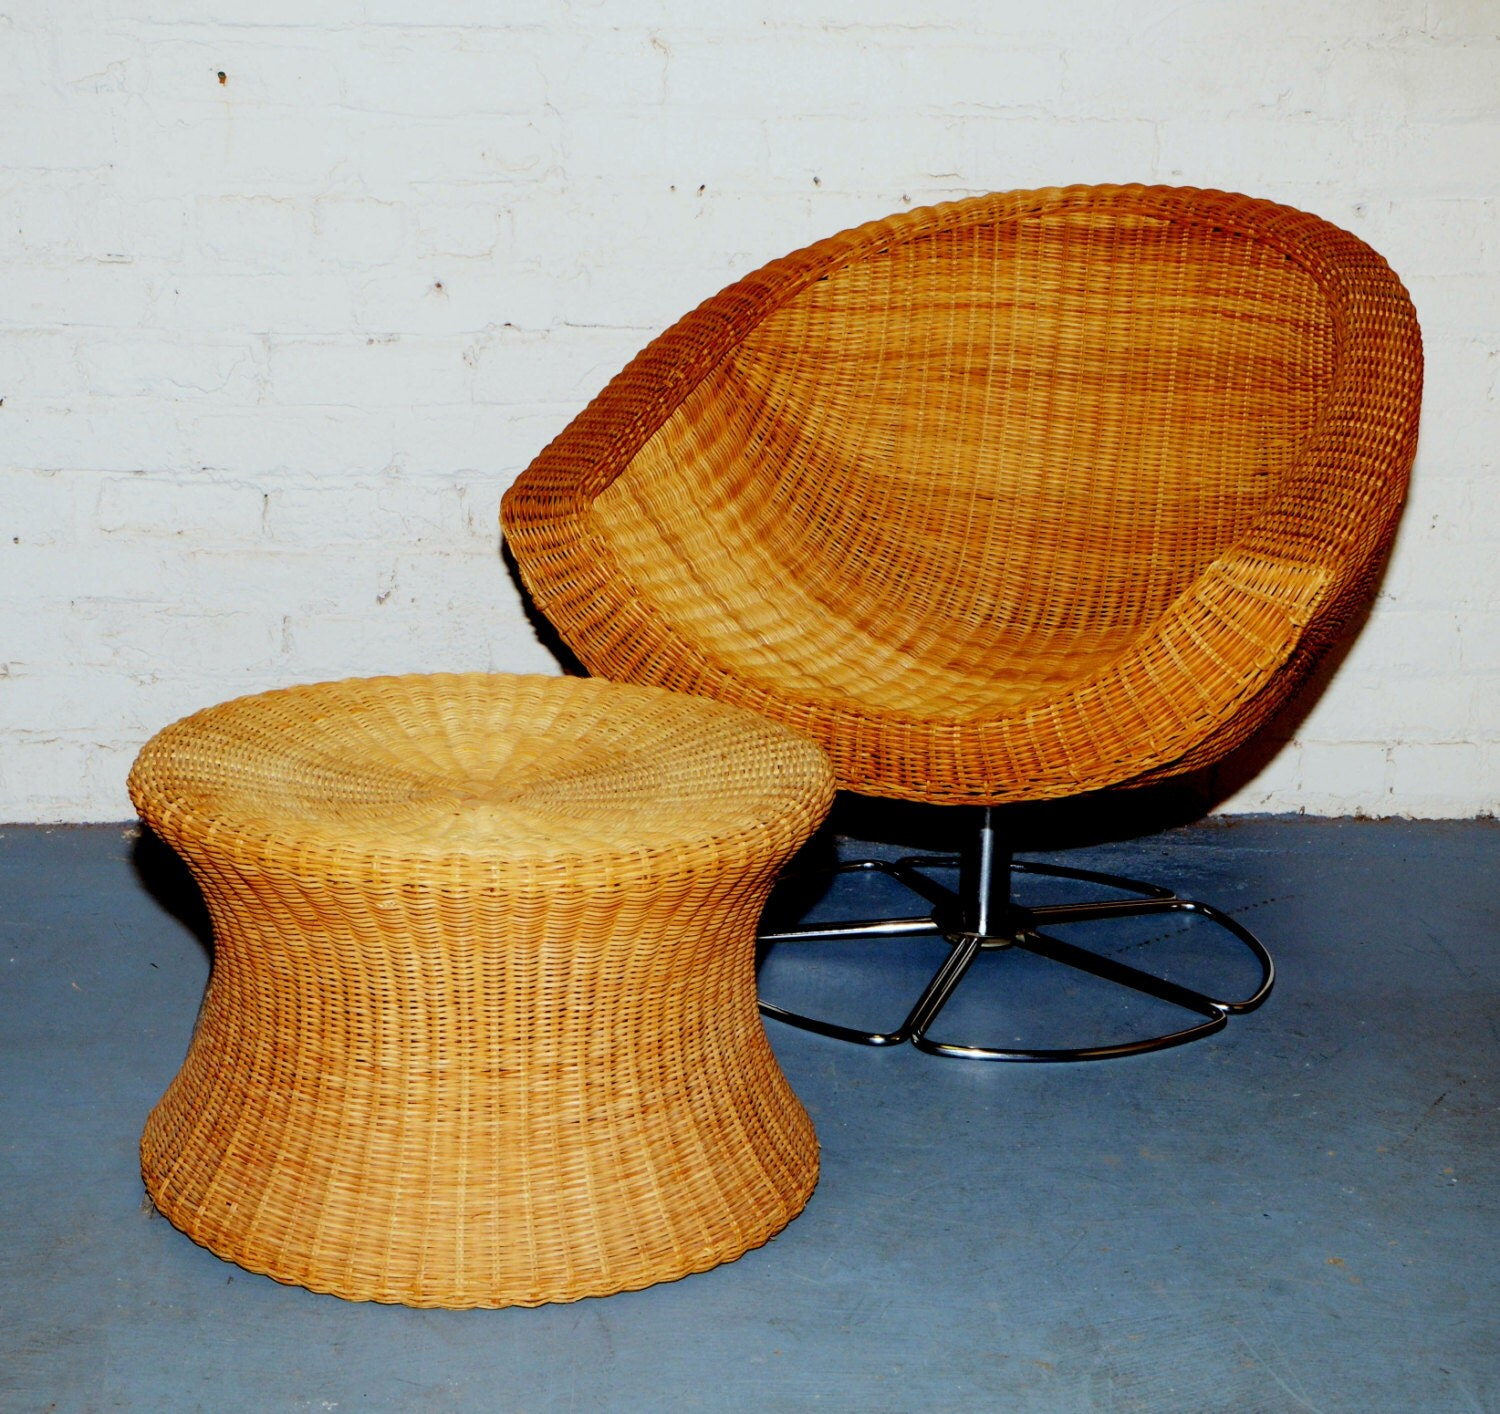 Wicker Swivel Chair Sold 1970 39s Wicker Coconut Swivel Chair W Chrome Base And